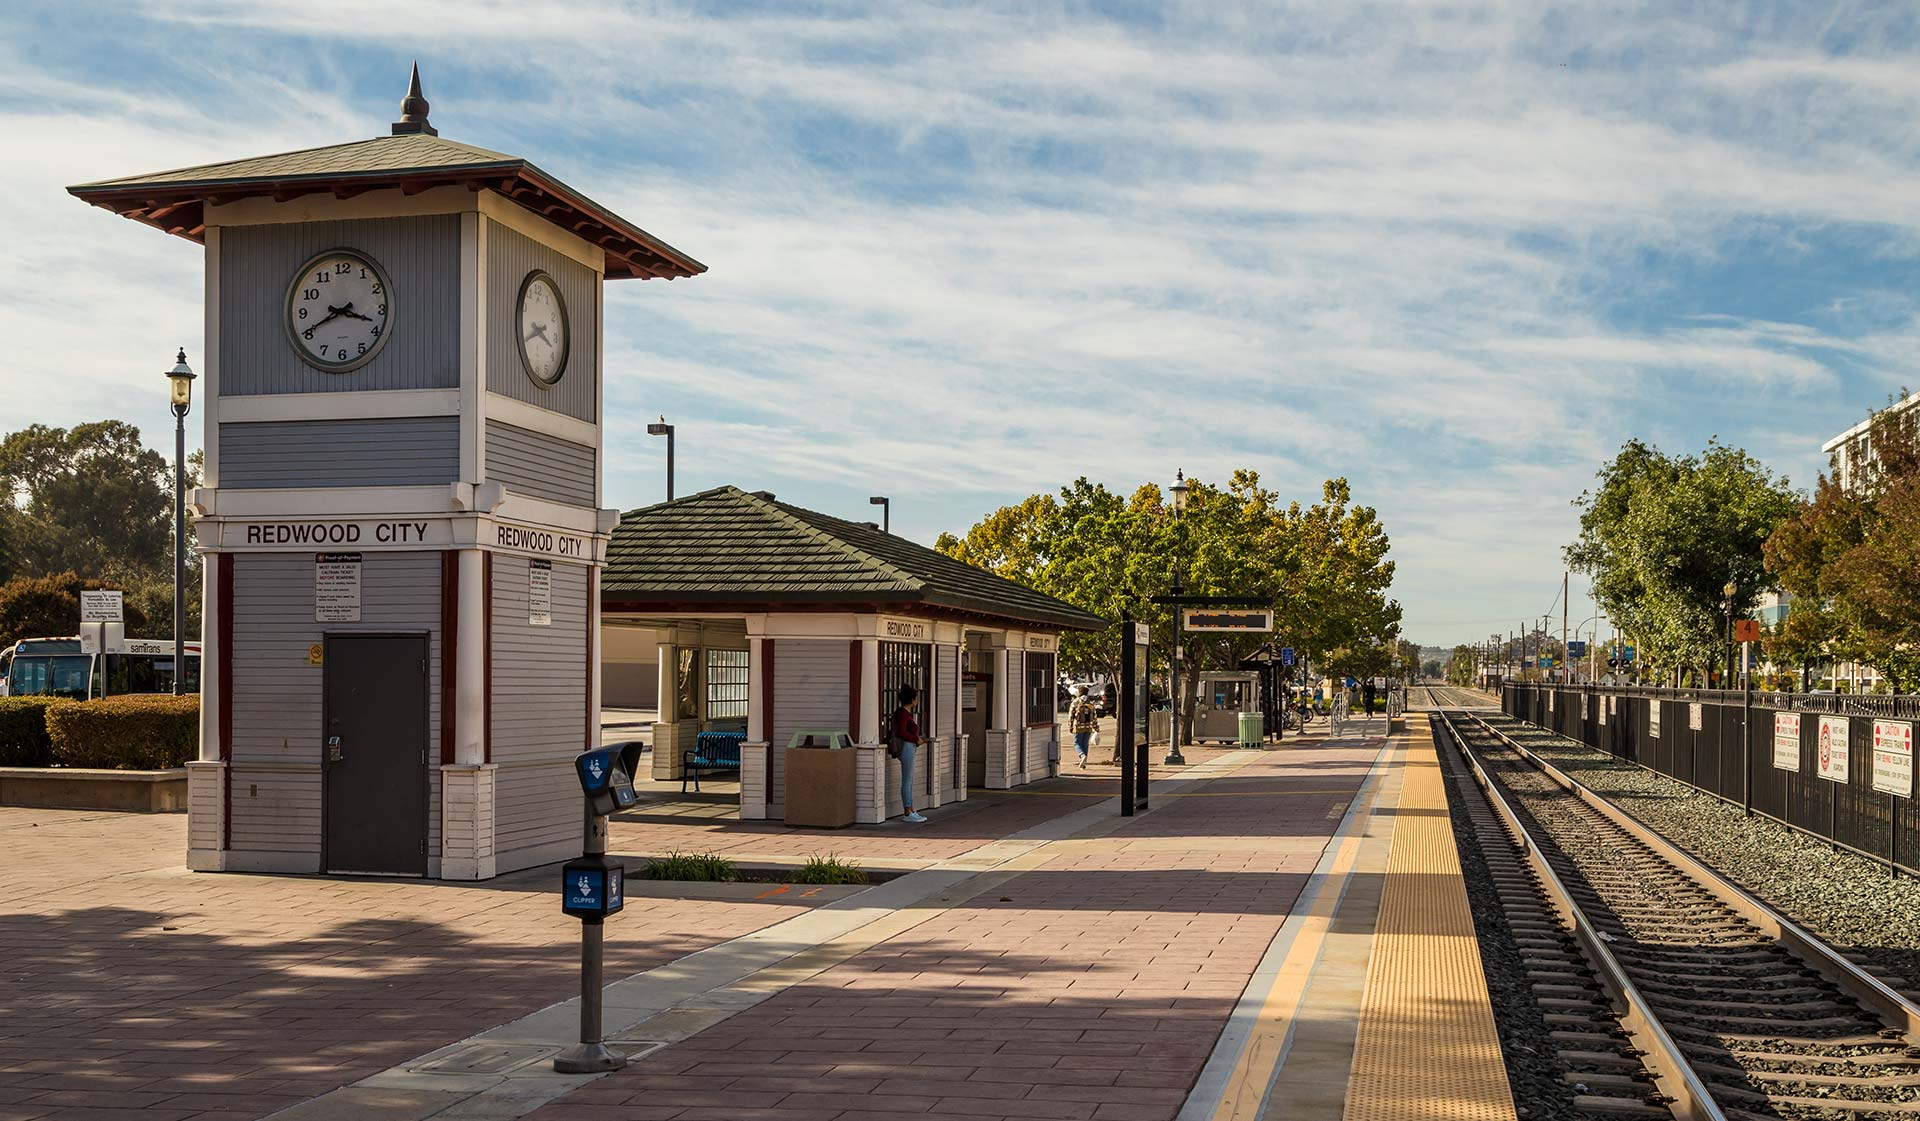 707 Leahy - Redwood City, CA - Train Station